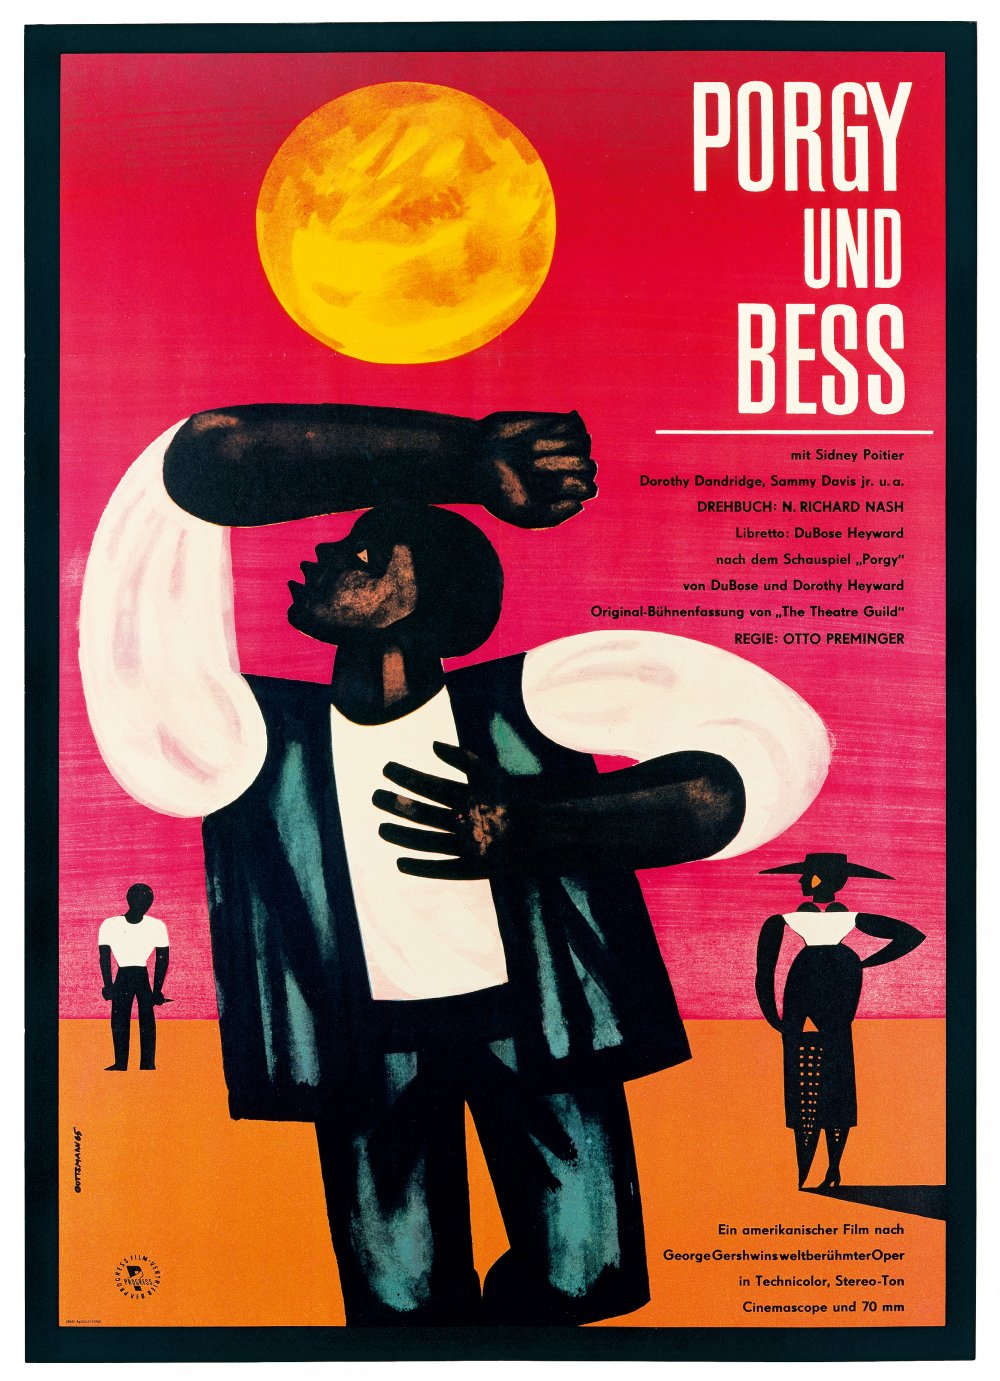 The East German poster for Porgy and Bess (1959)